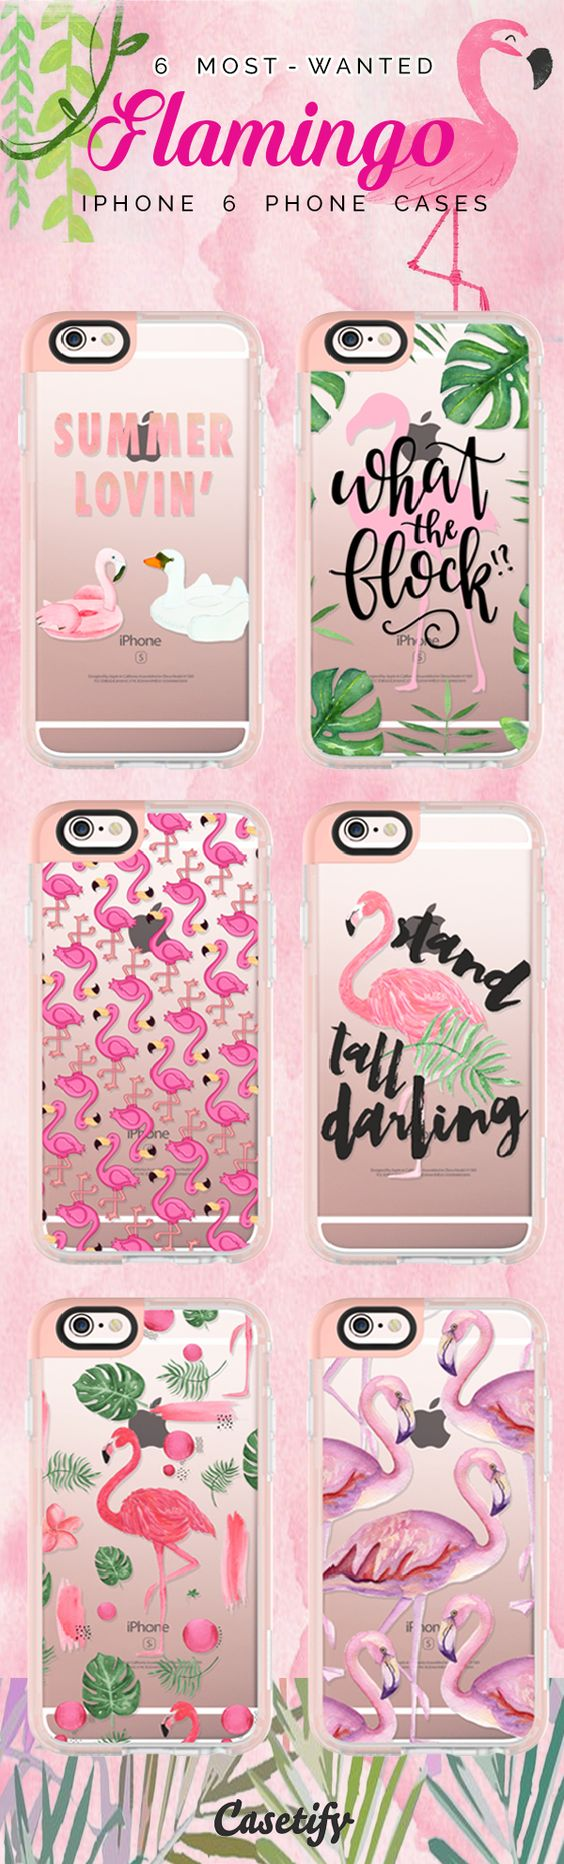 Top 6 Flamingo iPhone 6 protective phone case designs   Click through to see more iPhone phone case idea. Let's flamingo!  >>> https://www.casetify.com/collections/iphone-6s-flamingo-cases?device=iphone-6s/   @casetify